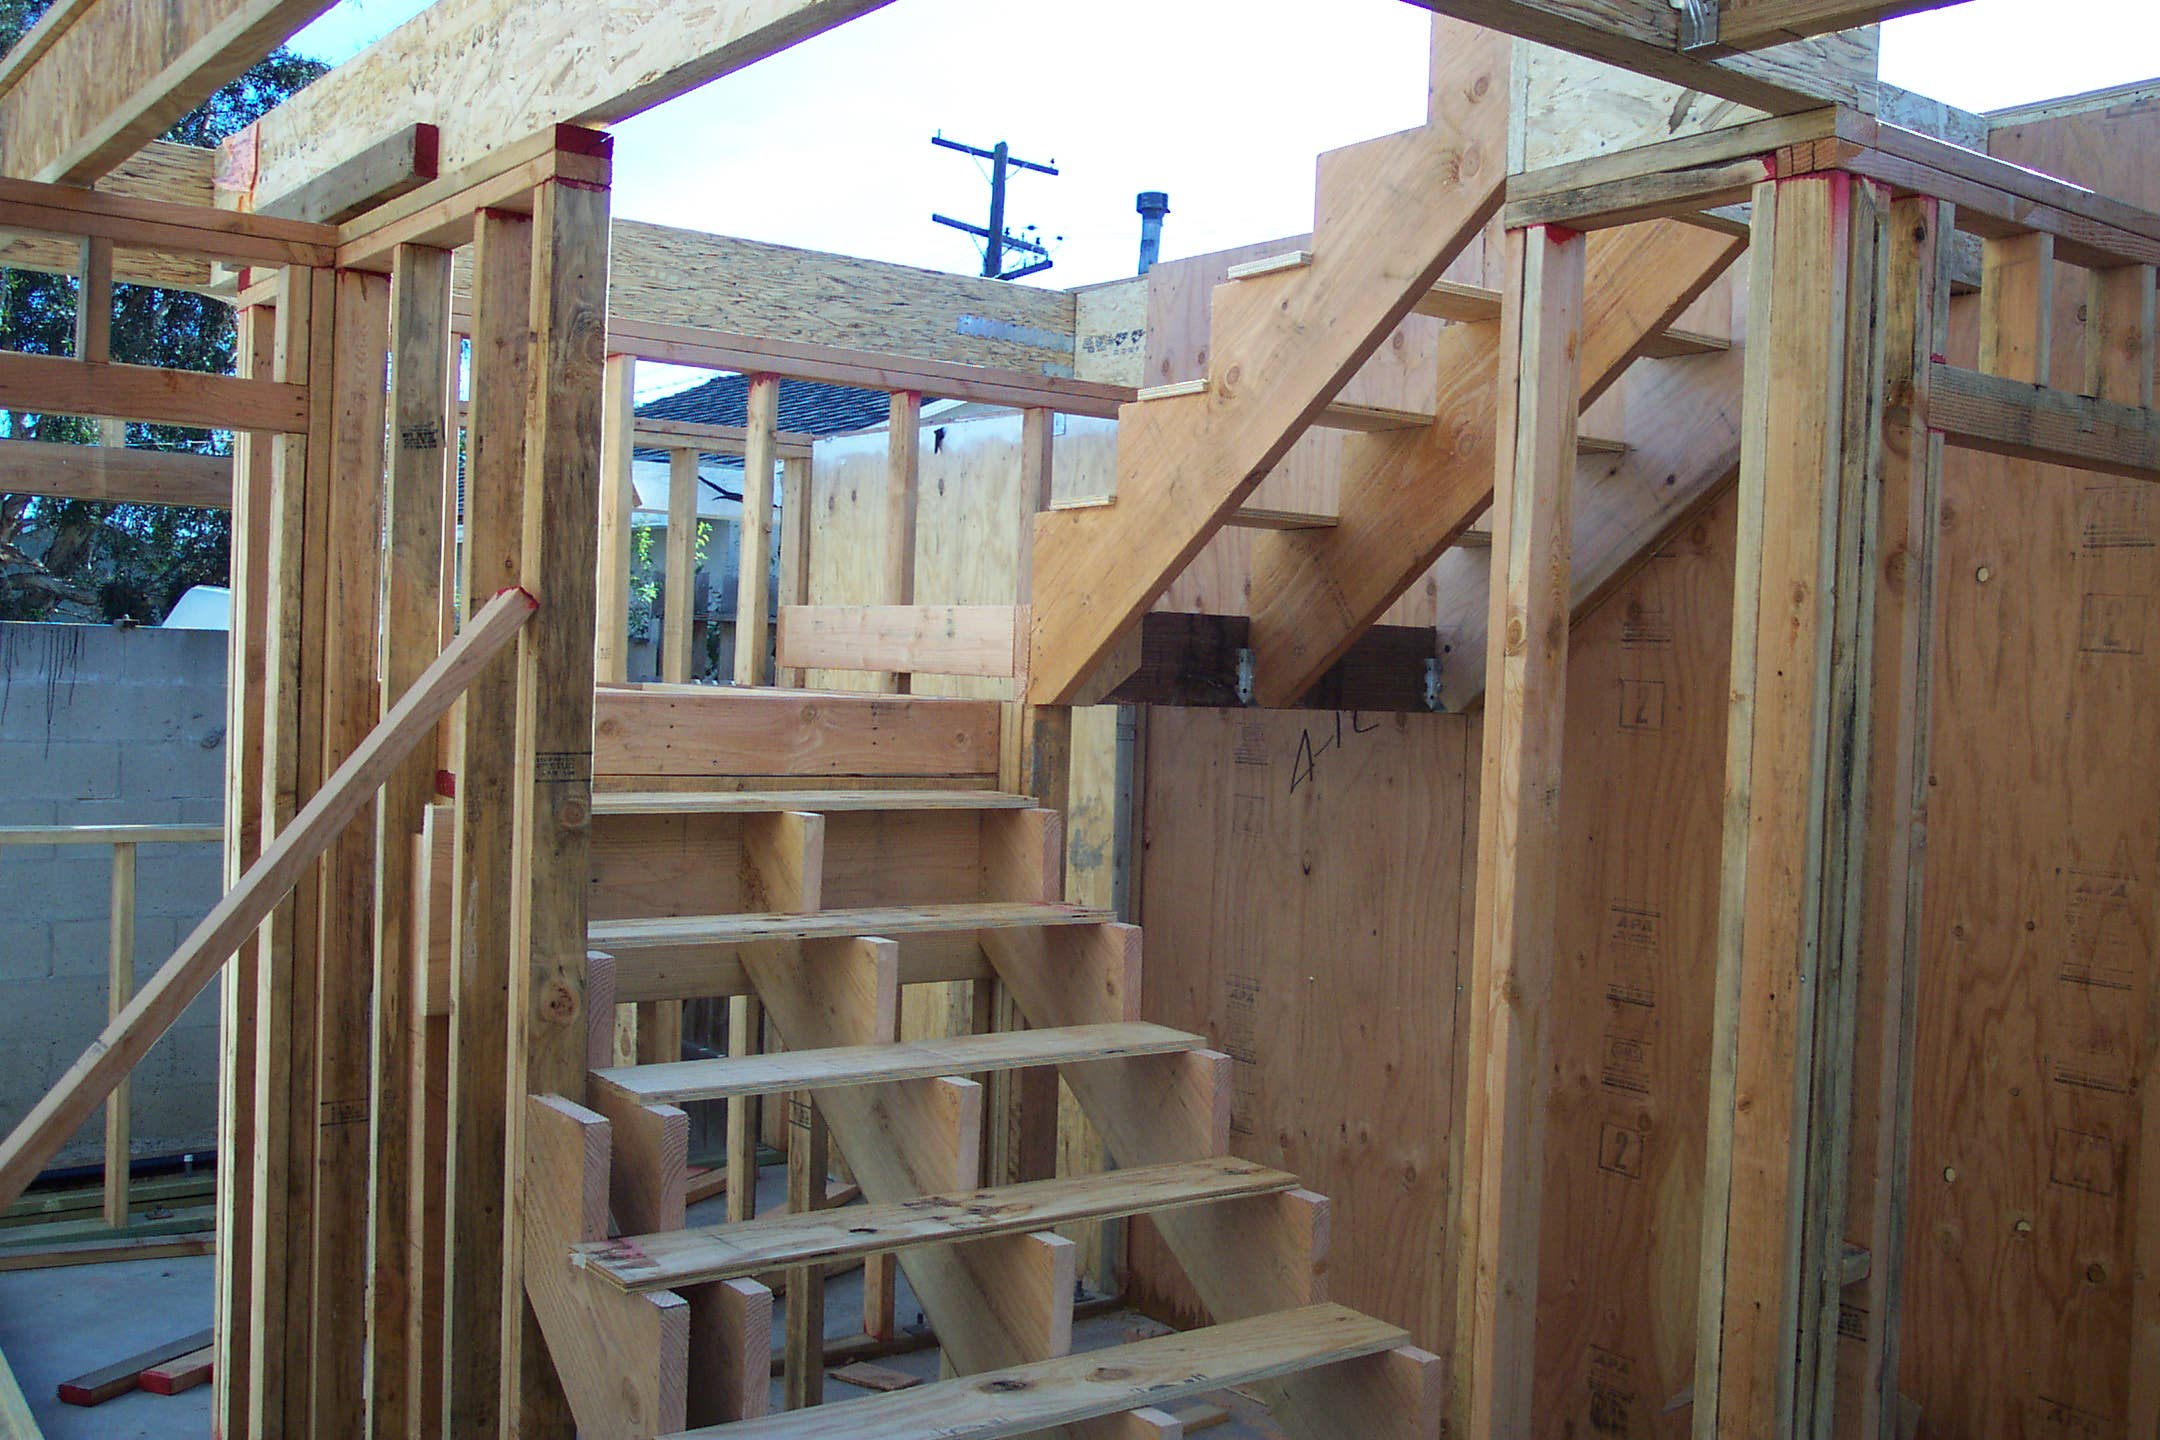 Best Process To Build Stair Layout (View 3 of 10)